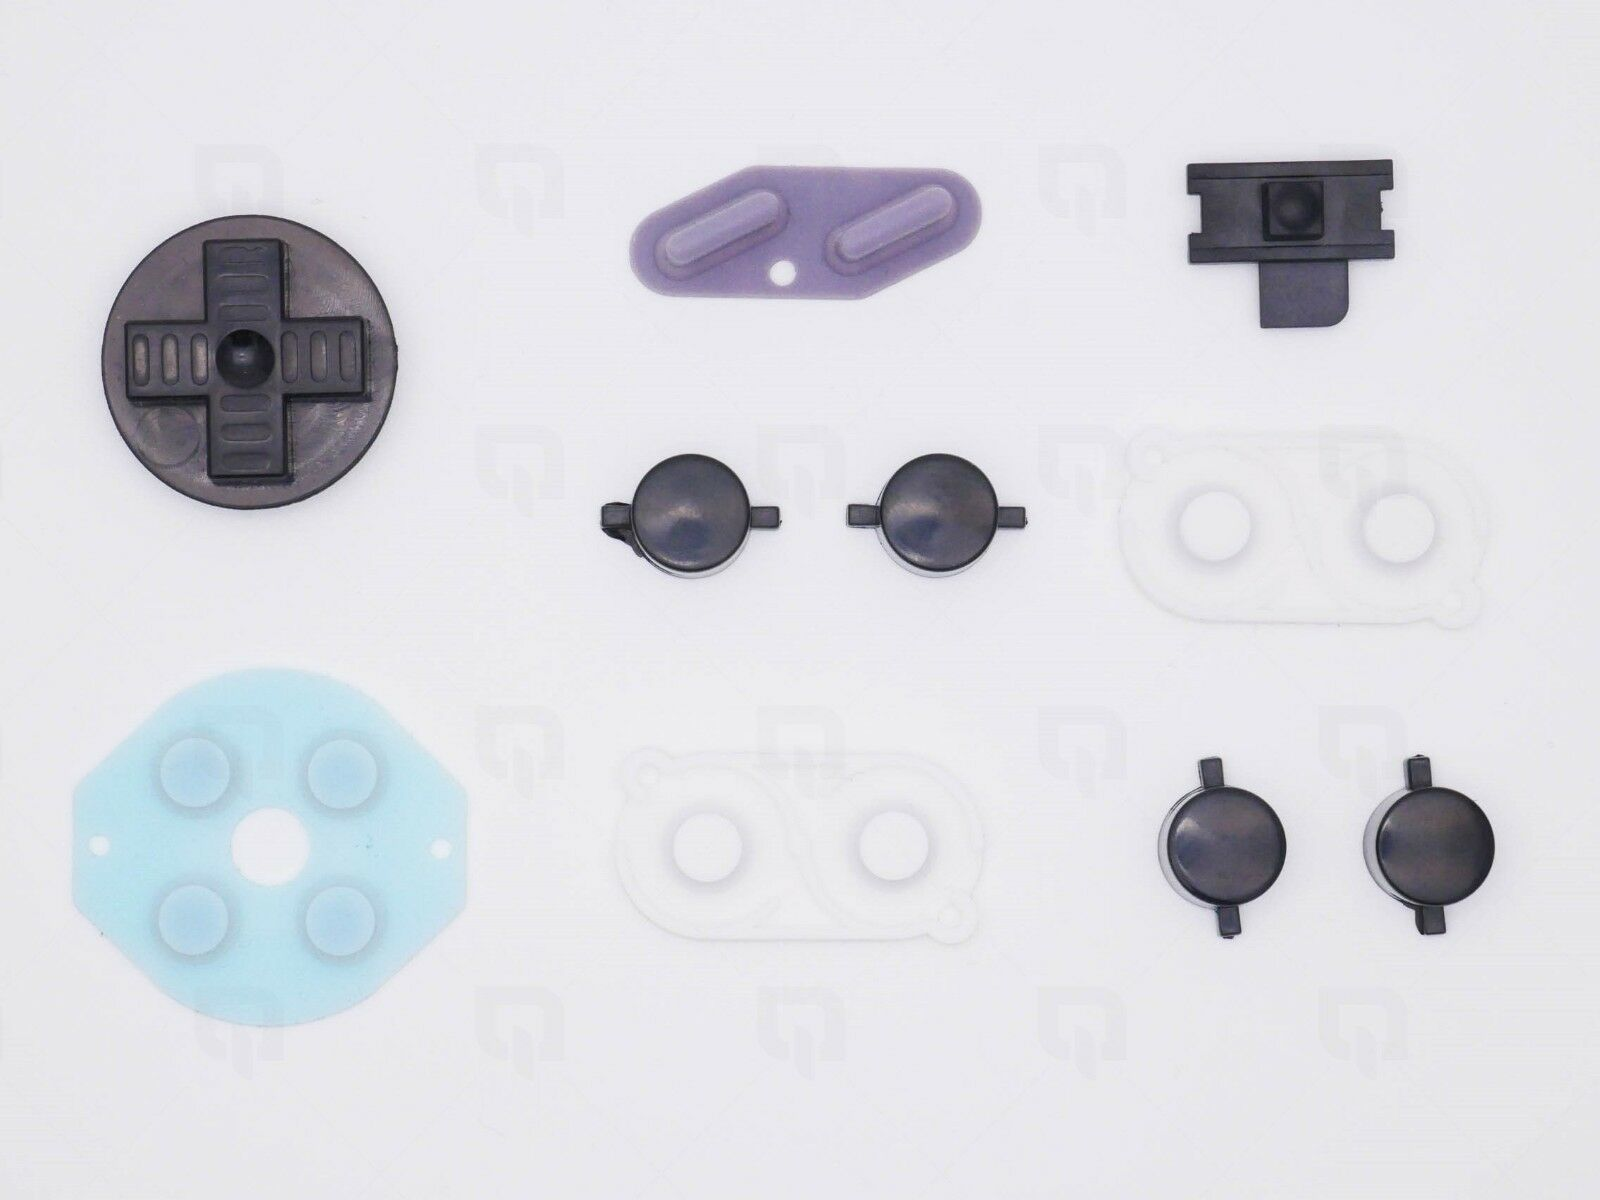 Details about Zero GBZ Black Nintendo Game Boy DMG-01 Buttons Conductive  Rubber Mod Kit pi